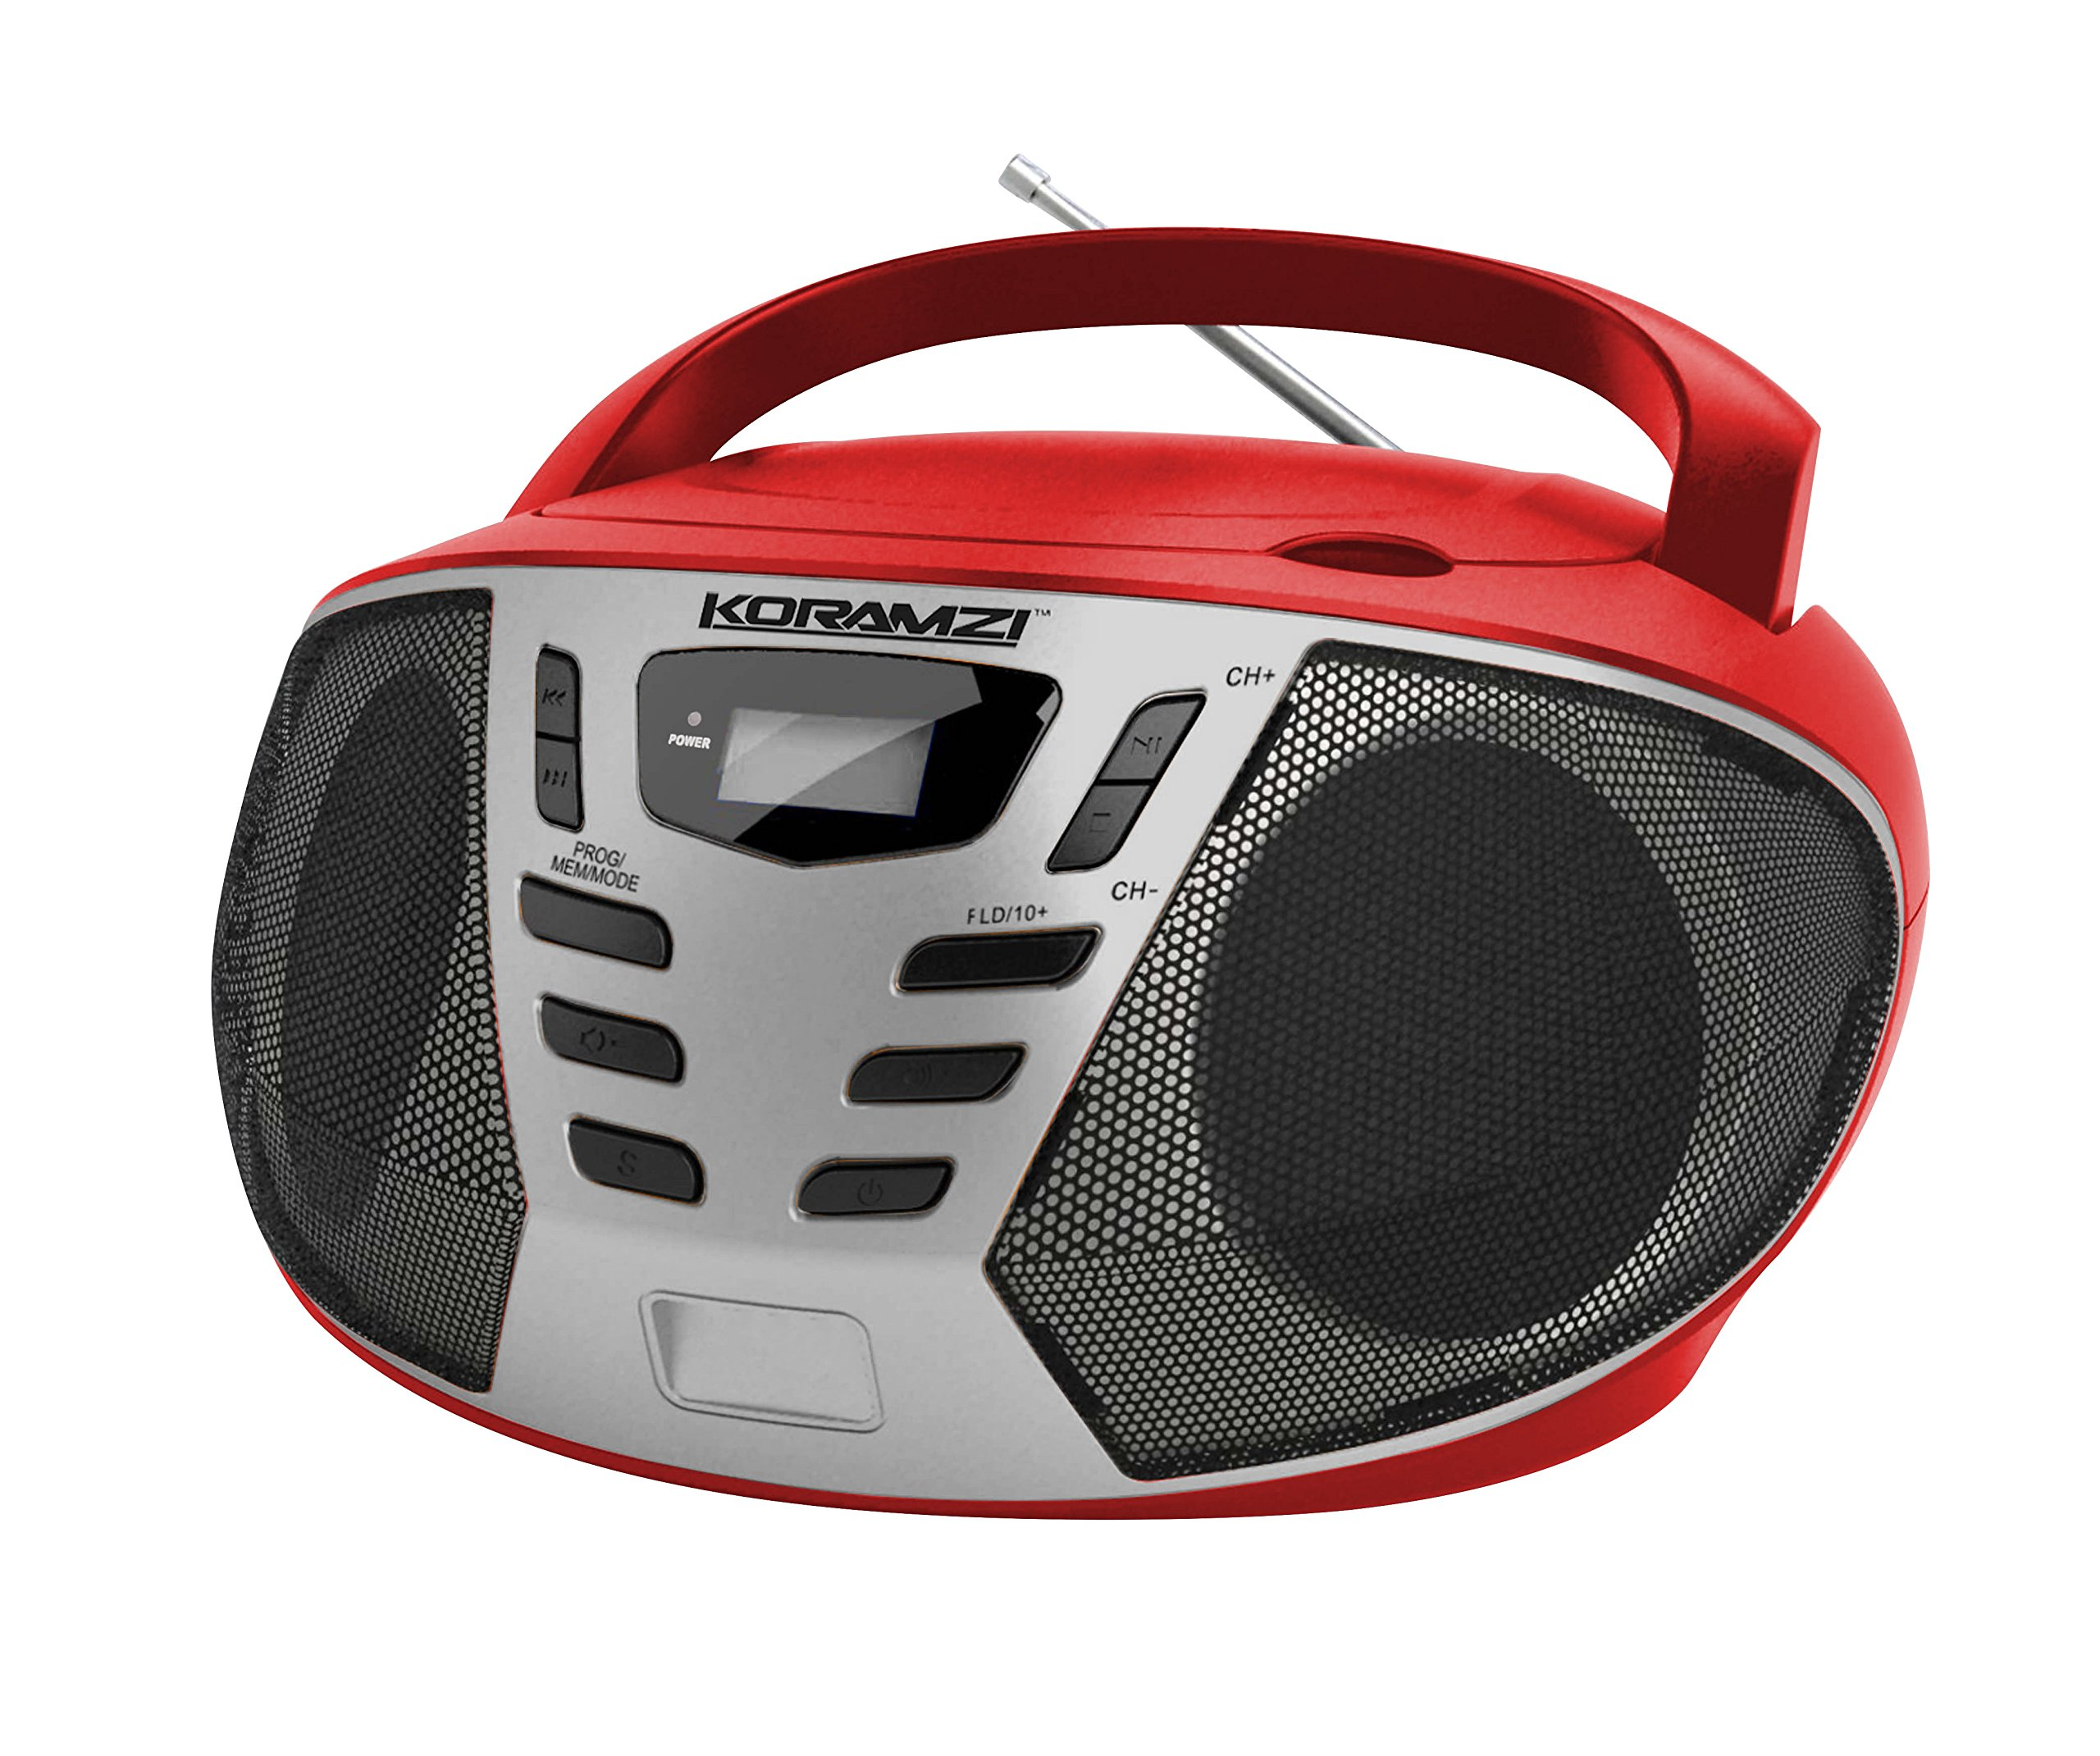 KORAMZI Portable CD Boombox w/AM/FM Radio,AUX in, Top Loading CD Player,Telescopic Antenna, LCD Display Indoor & Outdoor,Offices, Home, Restaurants, Picnics,School,Camping (Red/Silver) CD55-RDS